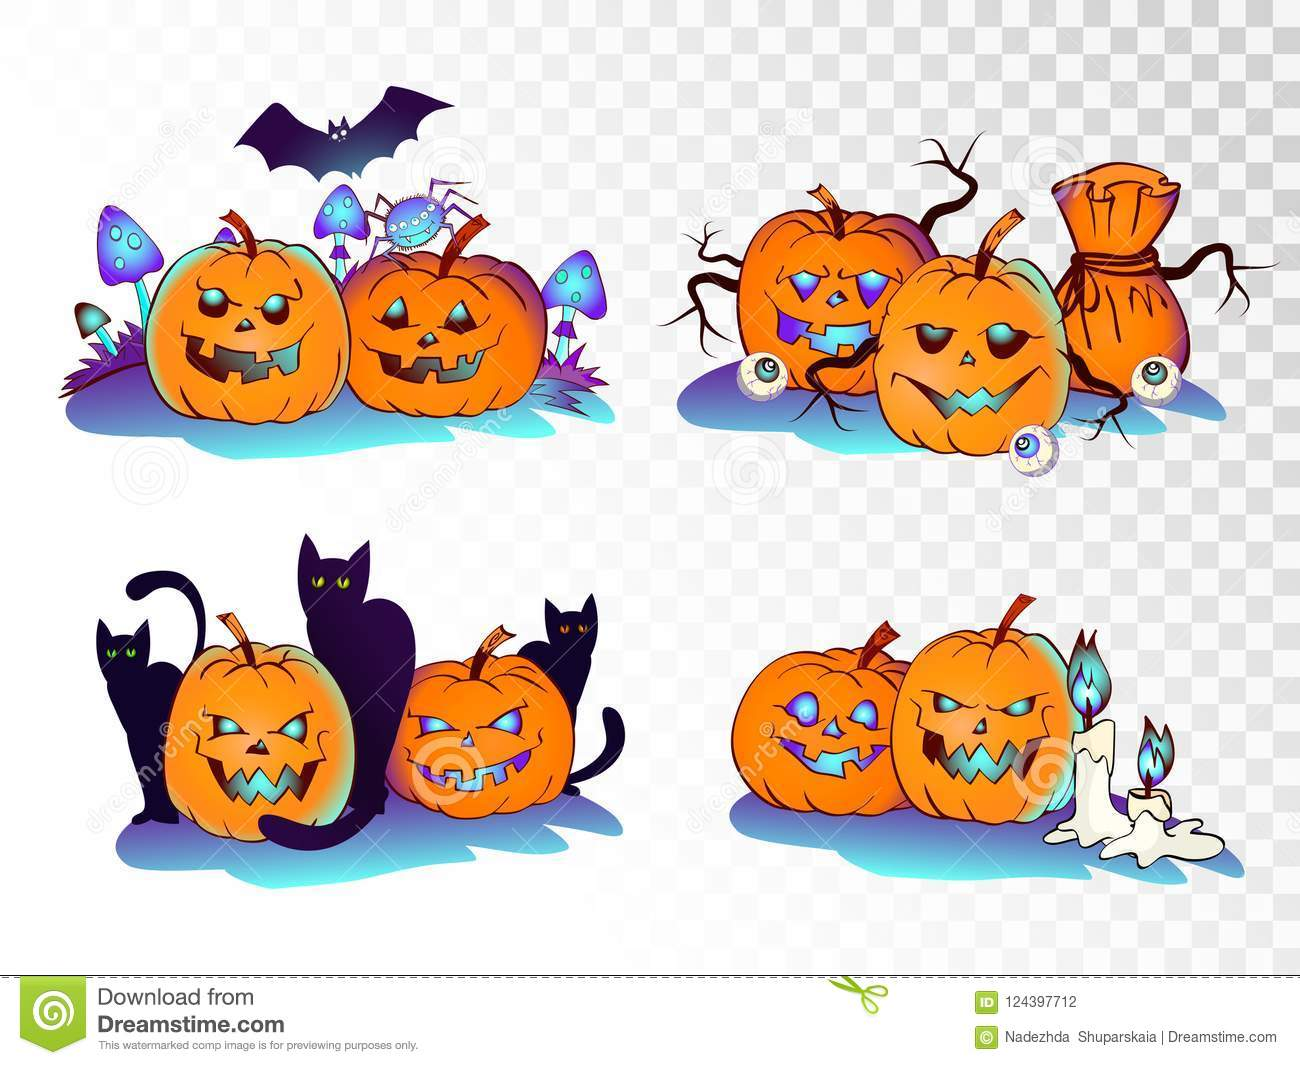 Halloween Pumpkin Clipart Transparent Background.Vector Set Of Cartoon Pumpkins On Transparent Background